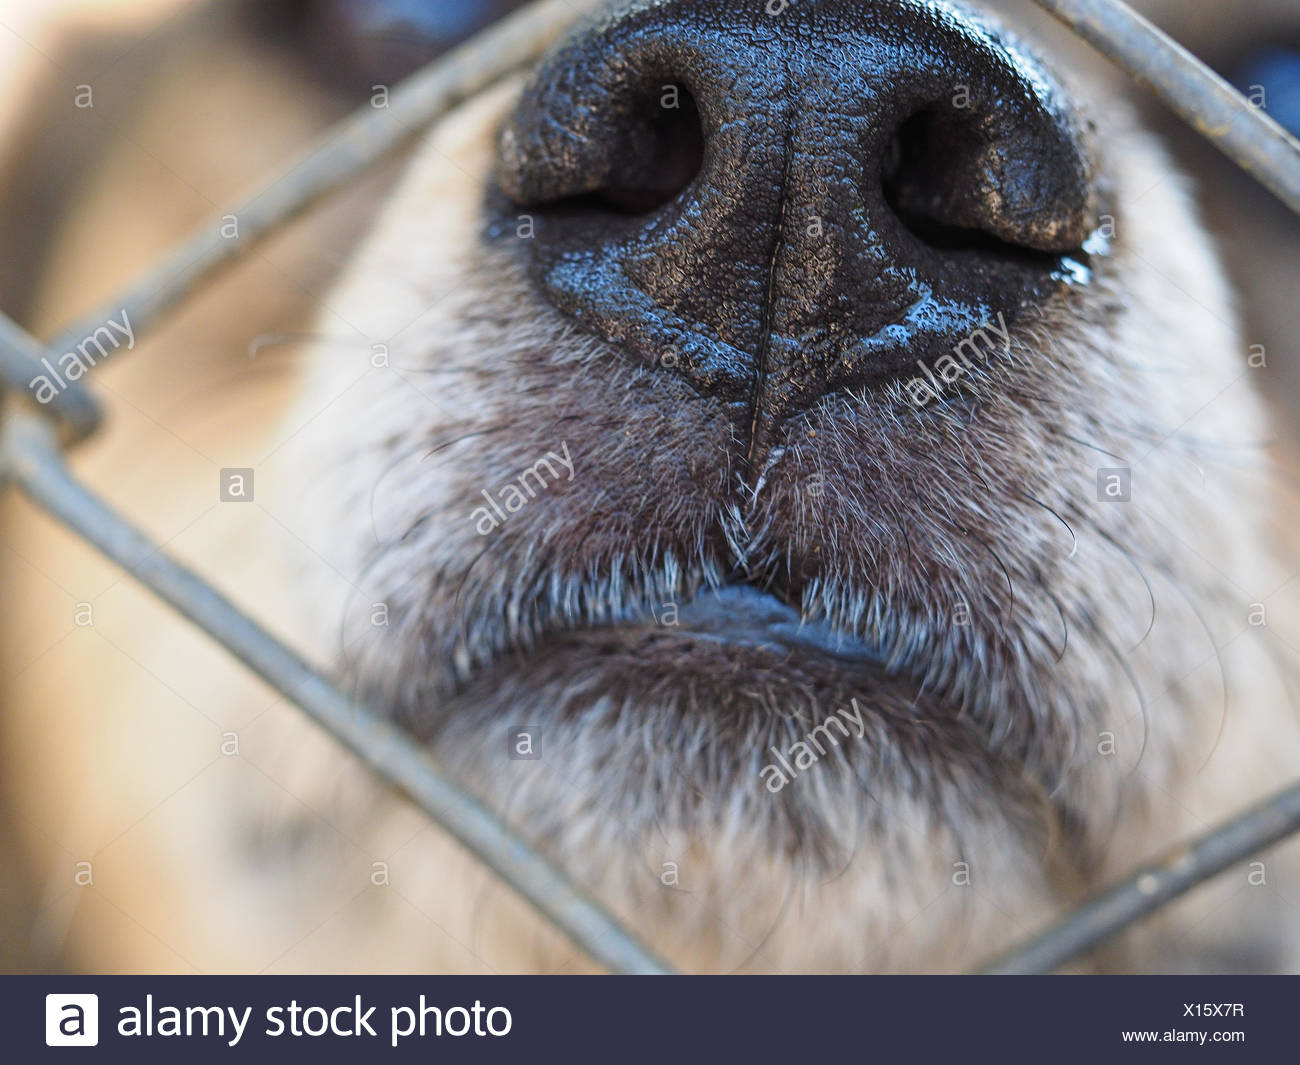 Close-Up Of Dog Snout - Stock Image